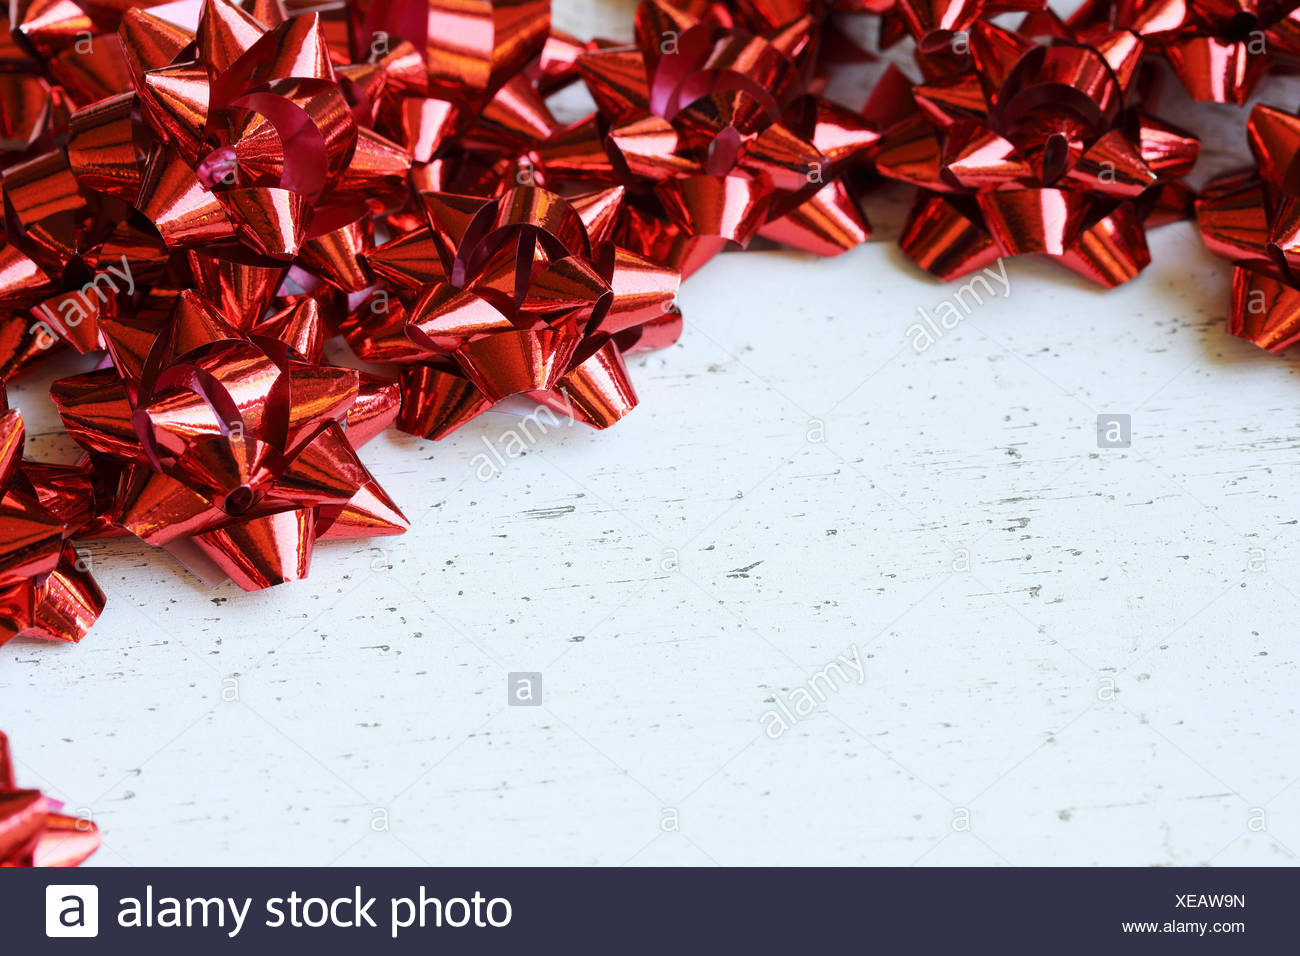 Red Bows with Copy Space - Stock Image